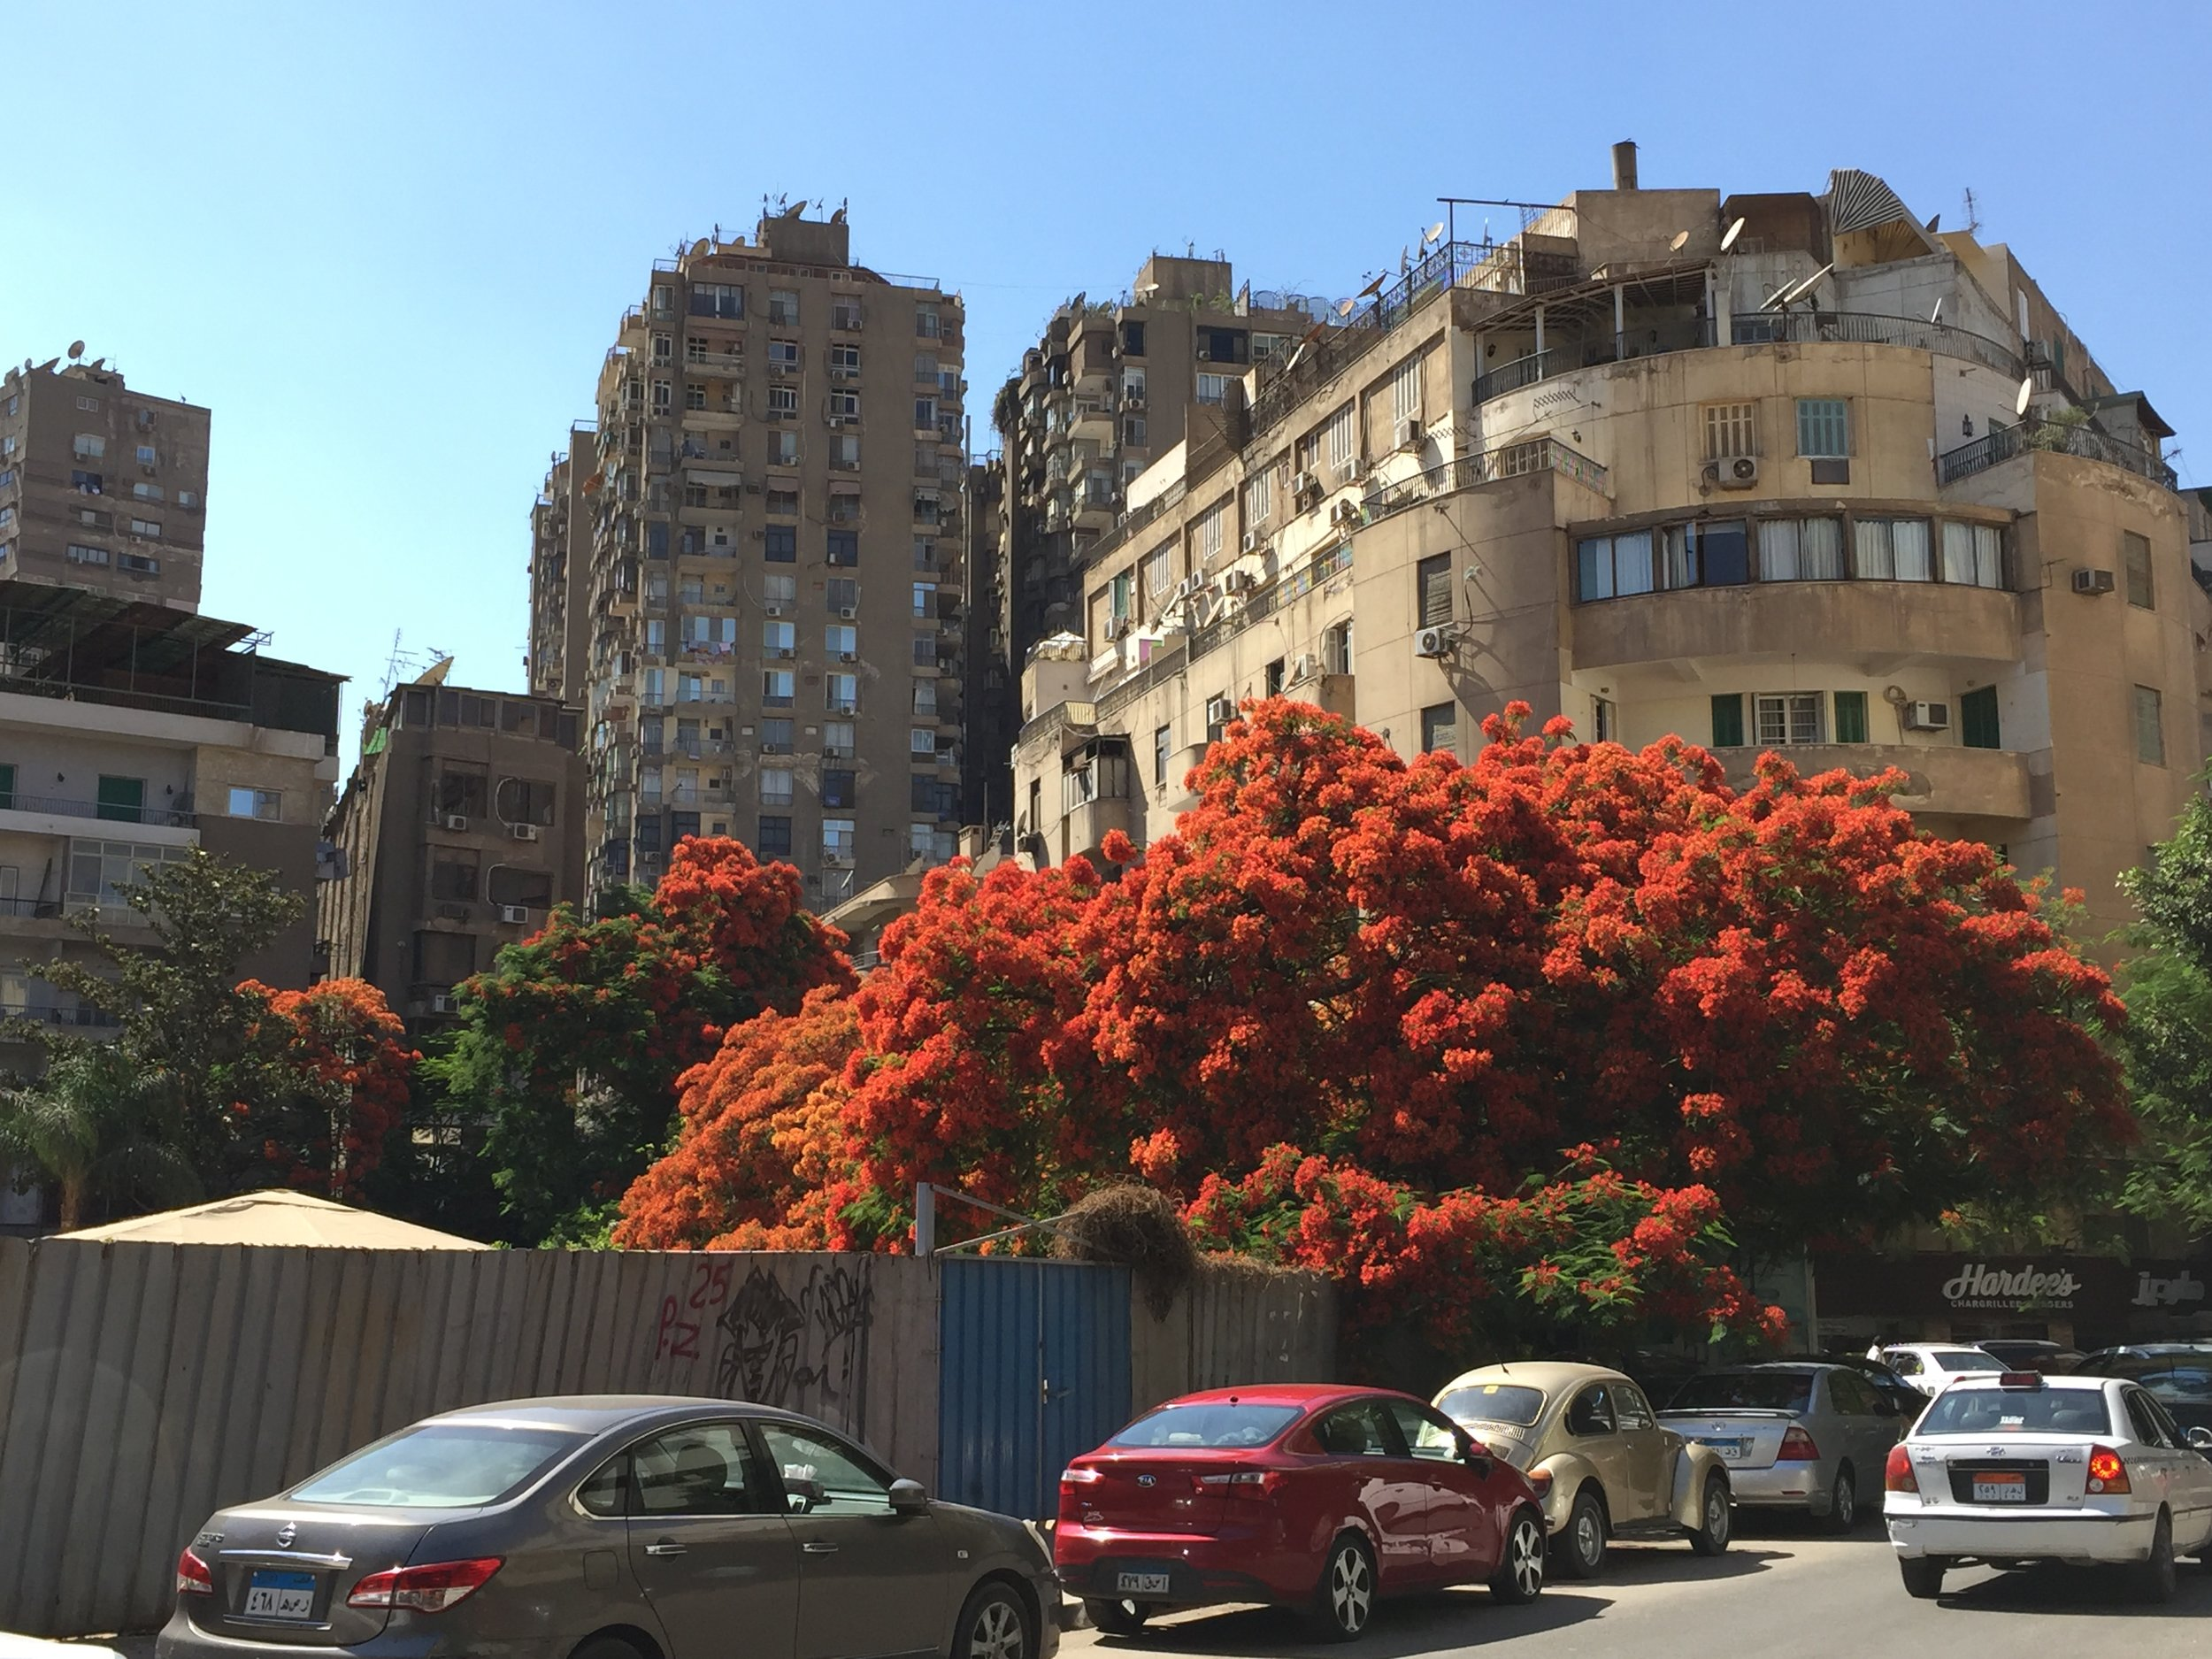 A street by our hotel in Zamlalek. Most of Cairo looks like this.